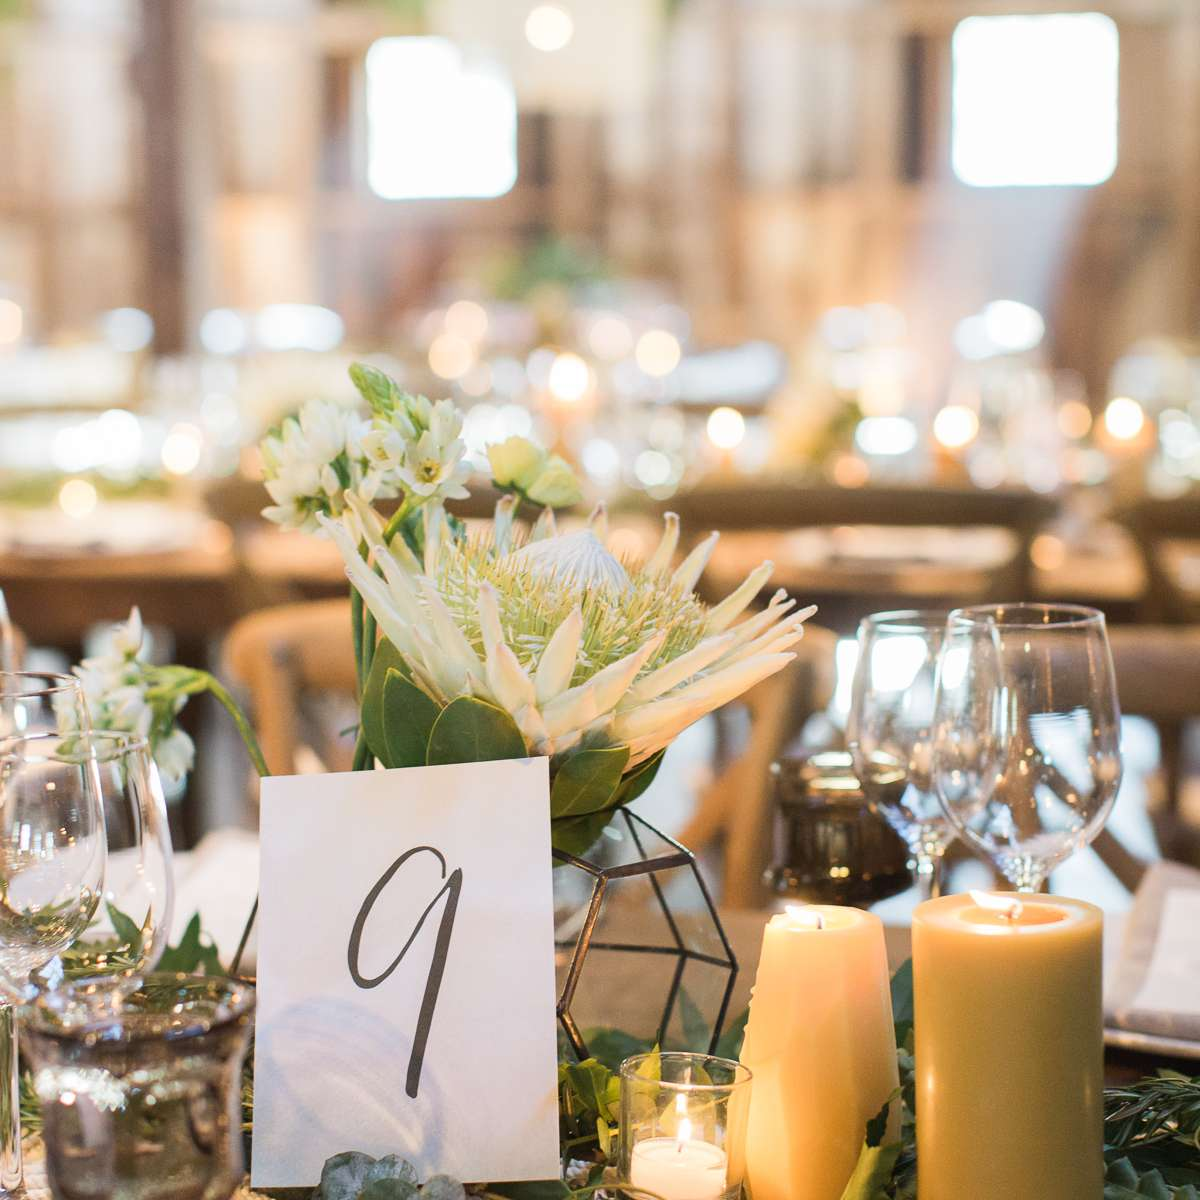 <p>Reception Table setting with number</p><br><br>